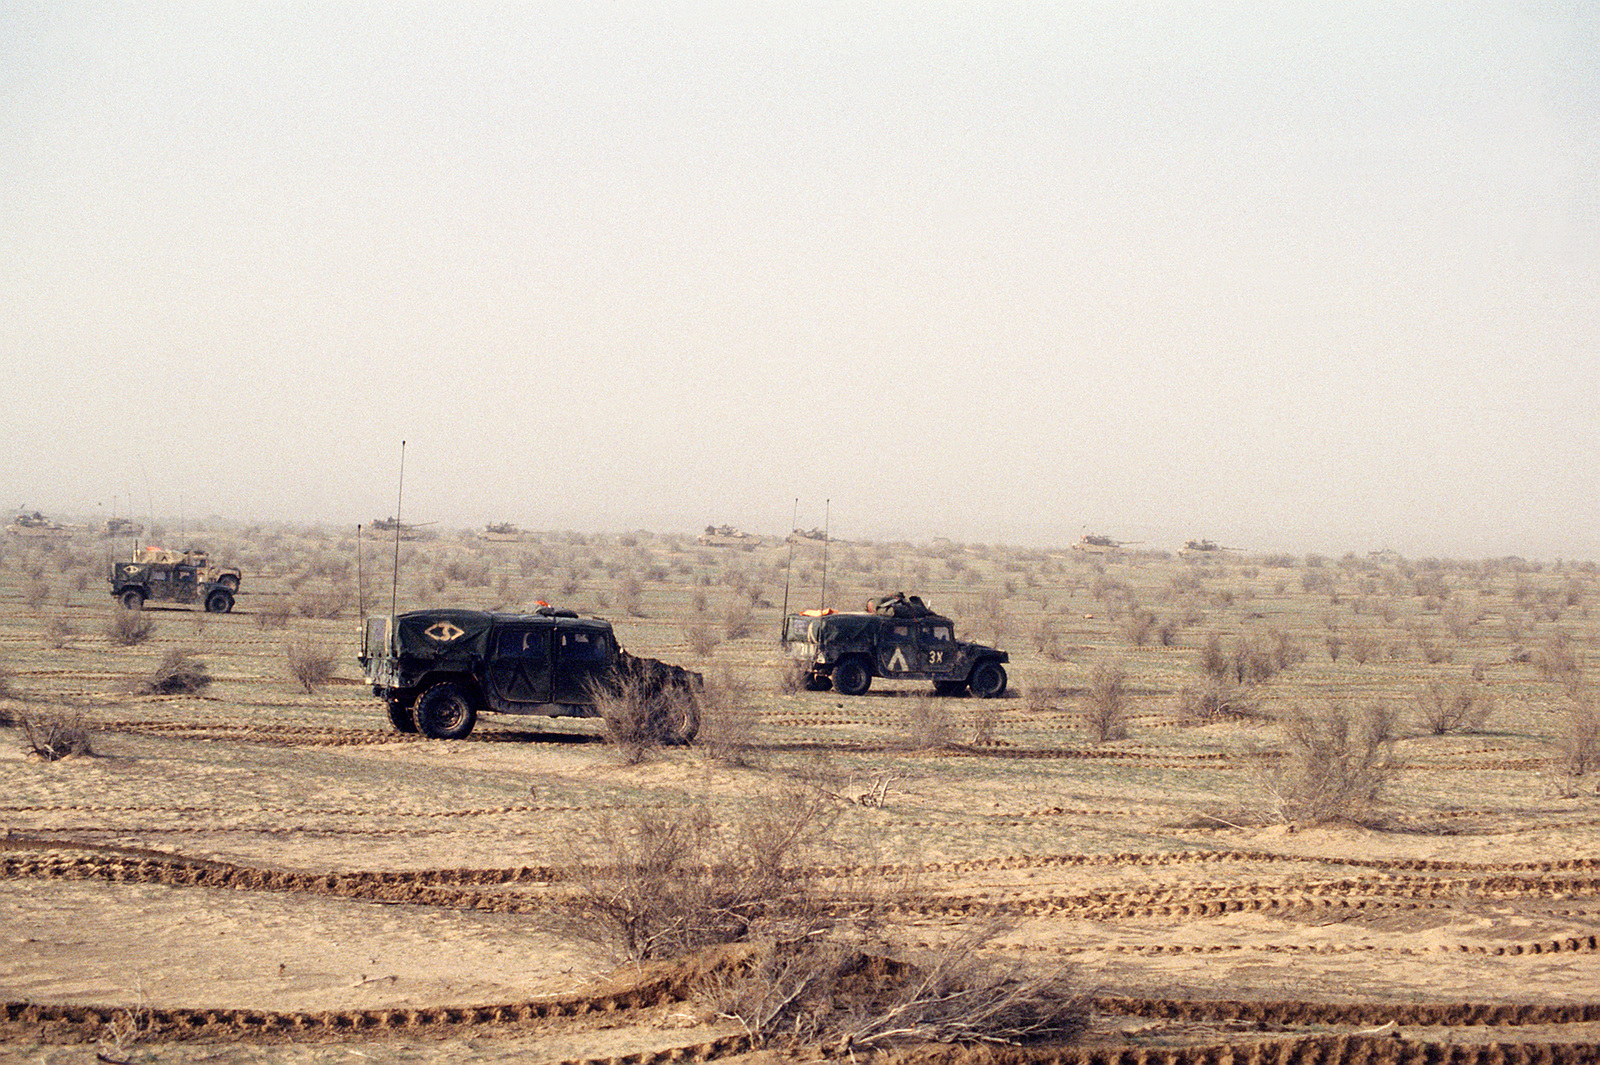 M-998 high-mobility, multipurpose, wheeled vehicles of the 1ST Armored Division, VII Corps, Augsburg, Germany, advance on Iraqi positions during Operation Desert Storm. On the horizon are VII Corps tanks